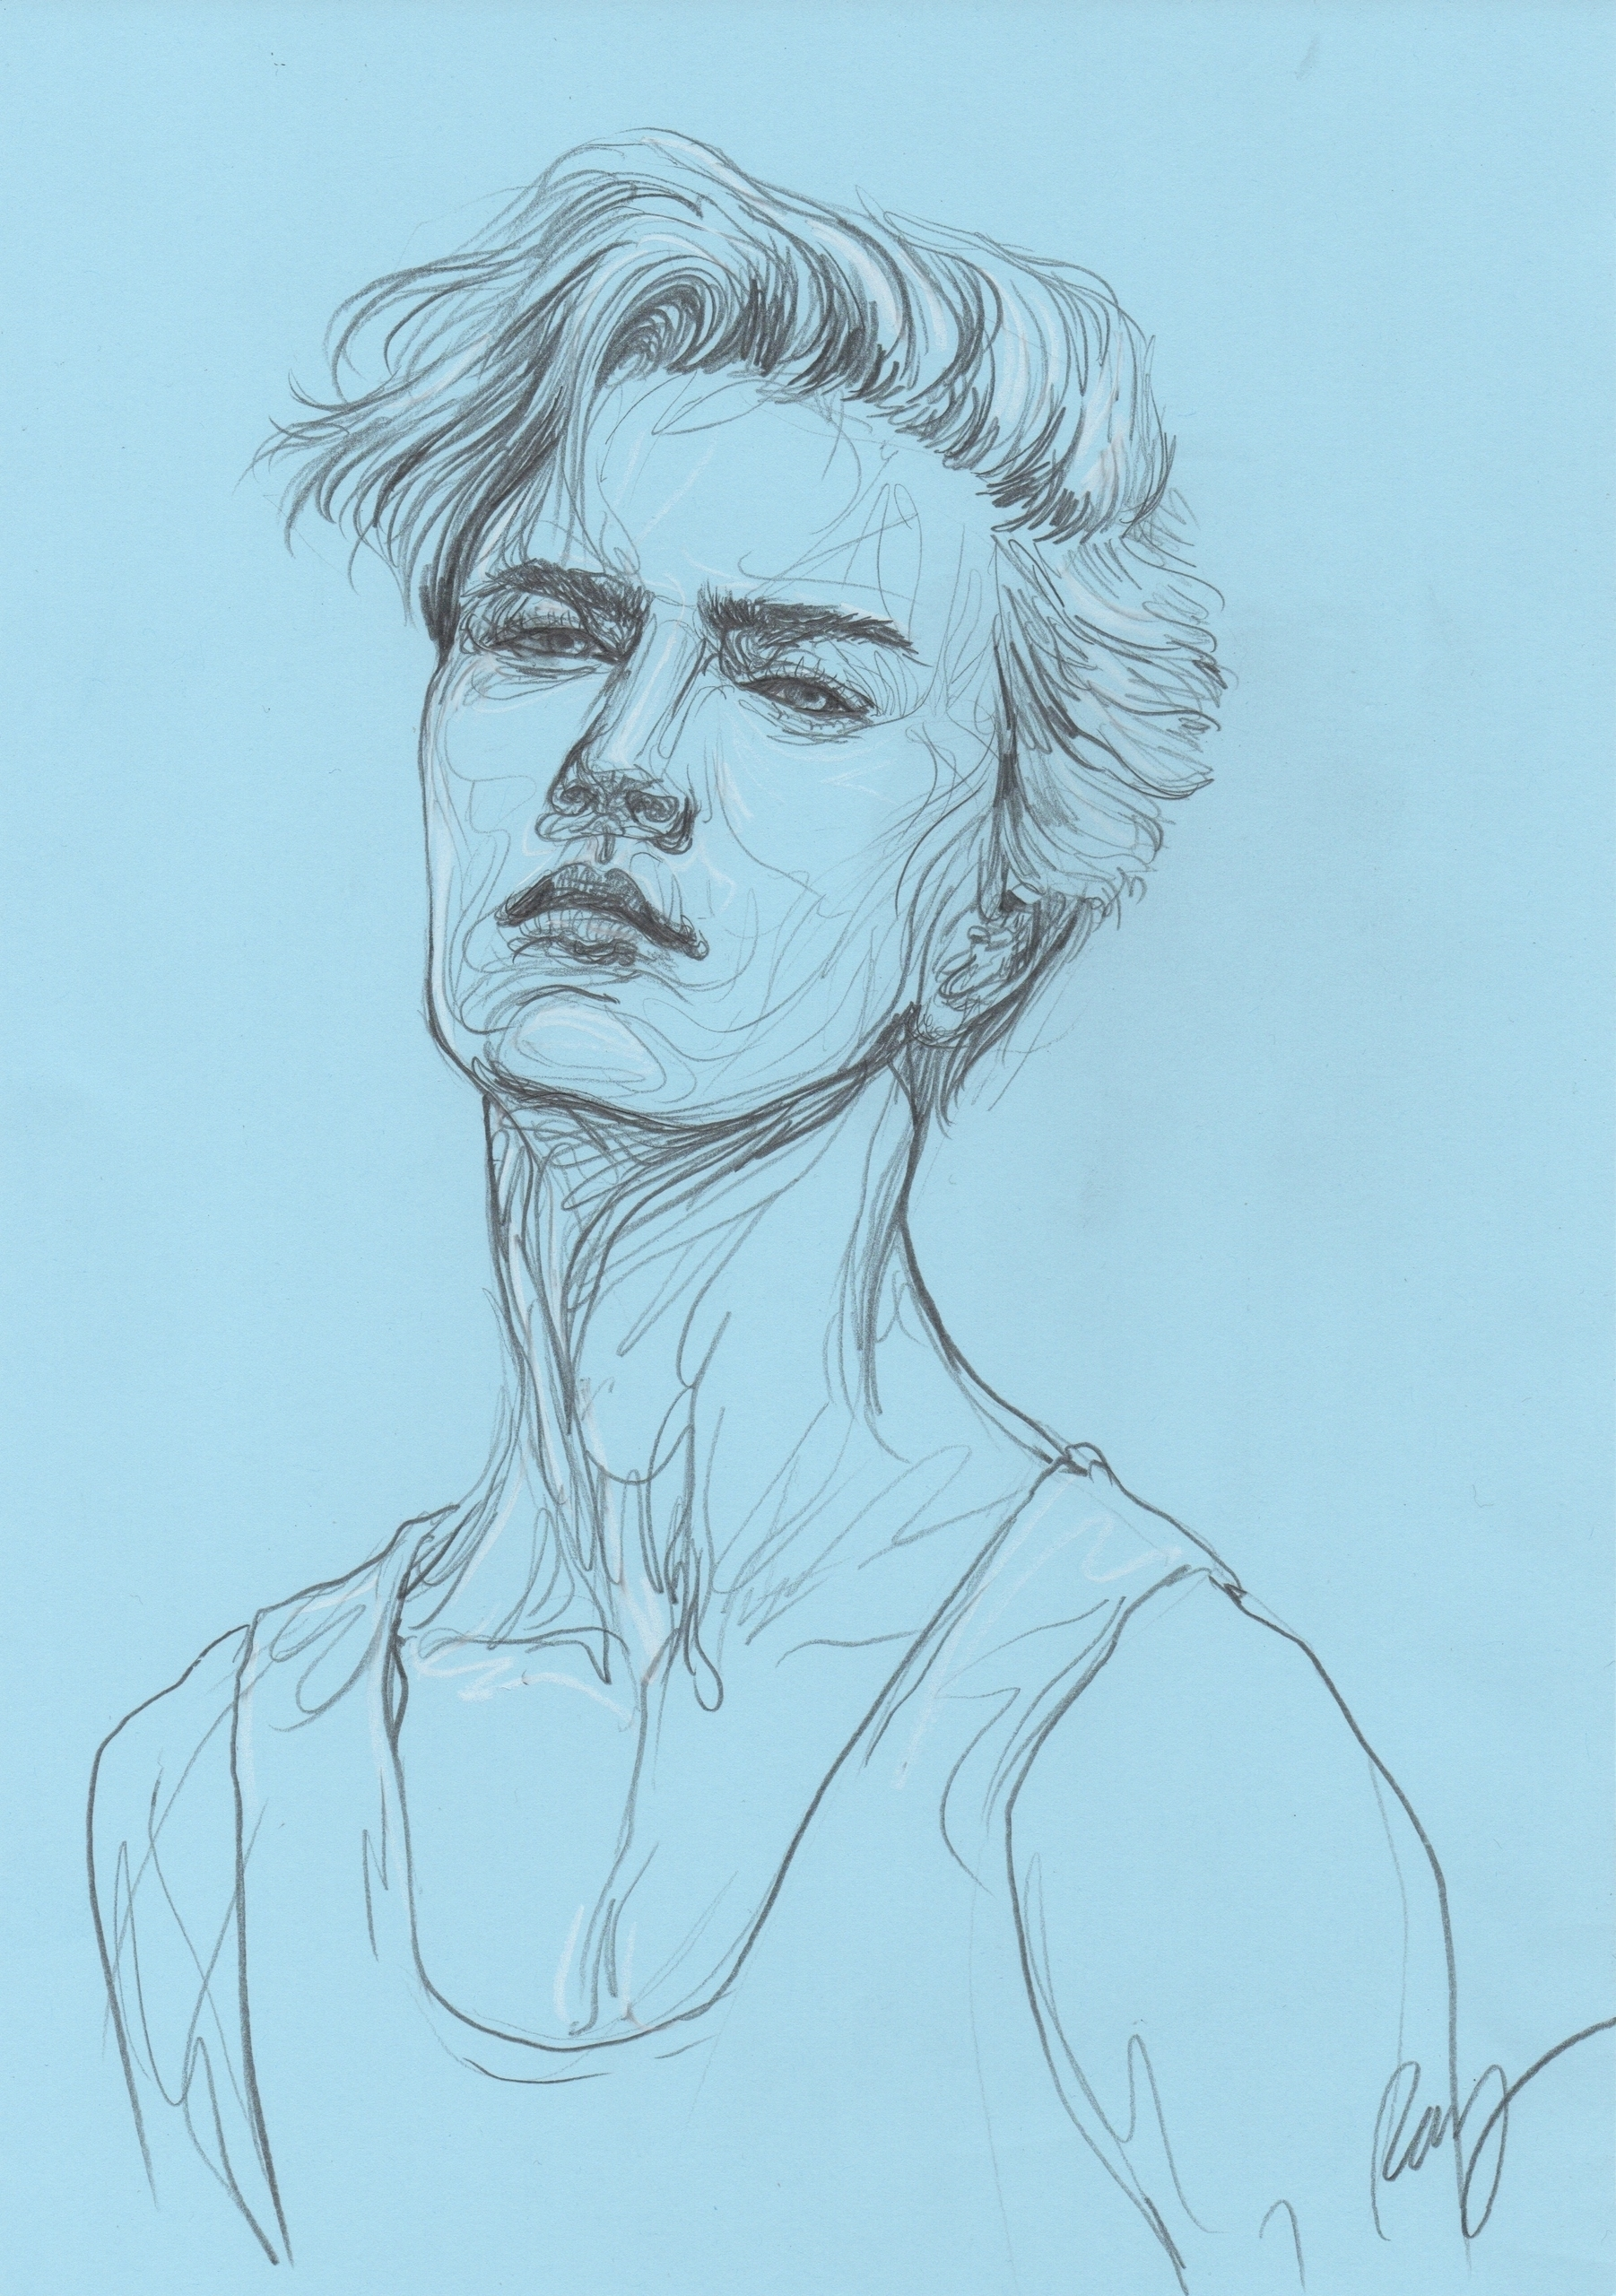 Lucky Blue Smith - illustration - juichenhu | ello